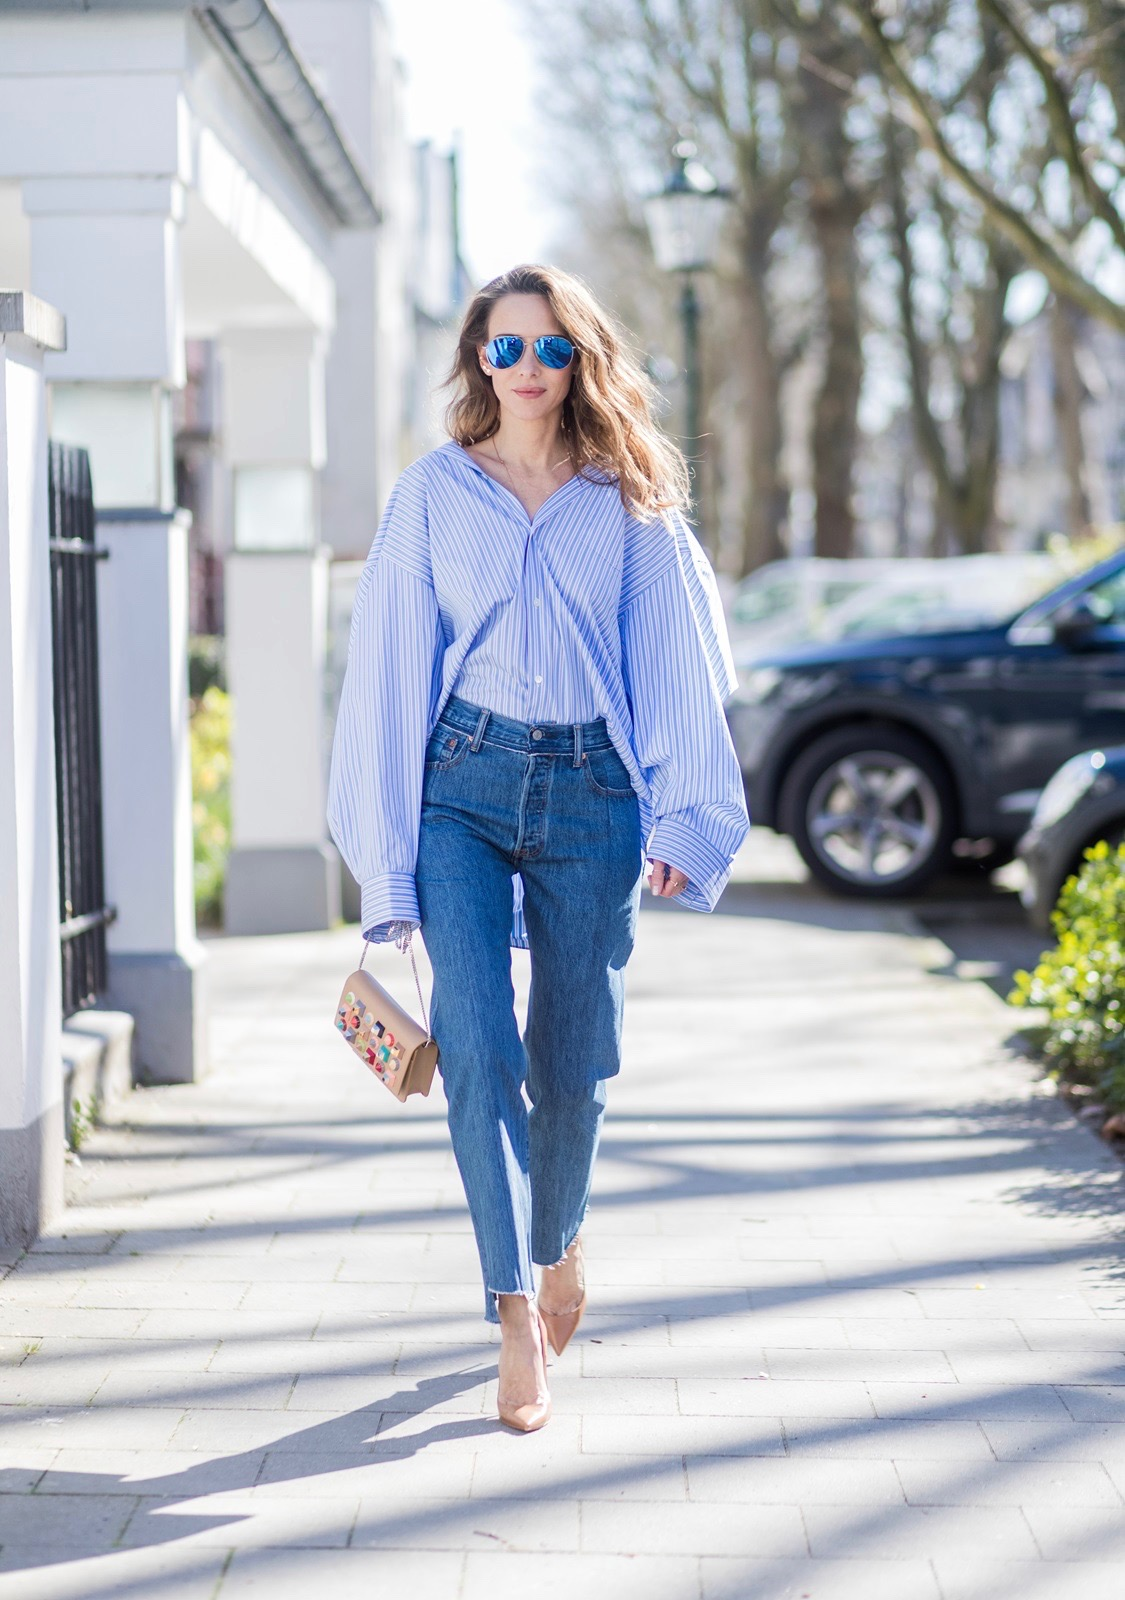 217db9dd6ef ... Model and fashion blogger Alexandra Lapp wearing an oversized navy and  white striped cotton shirt